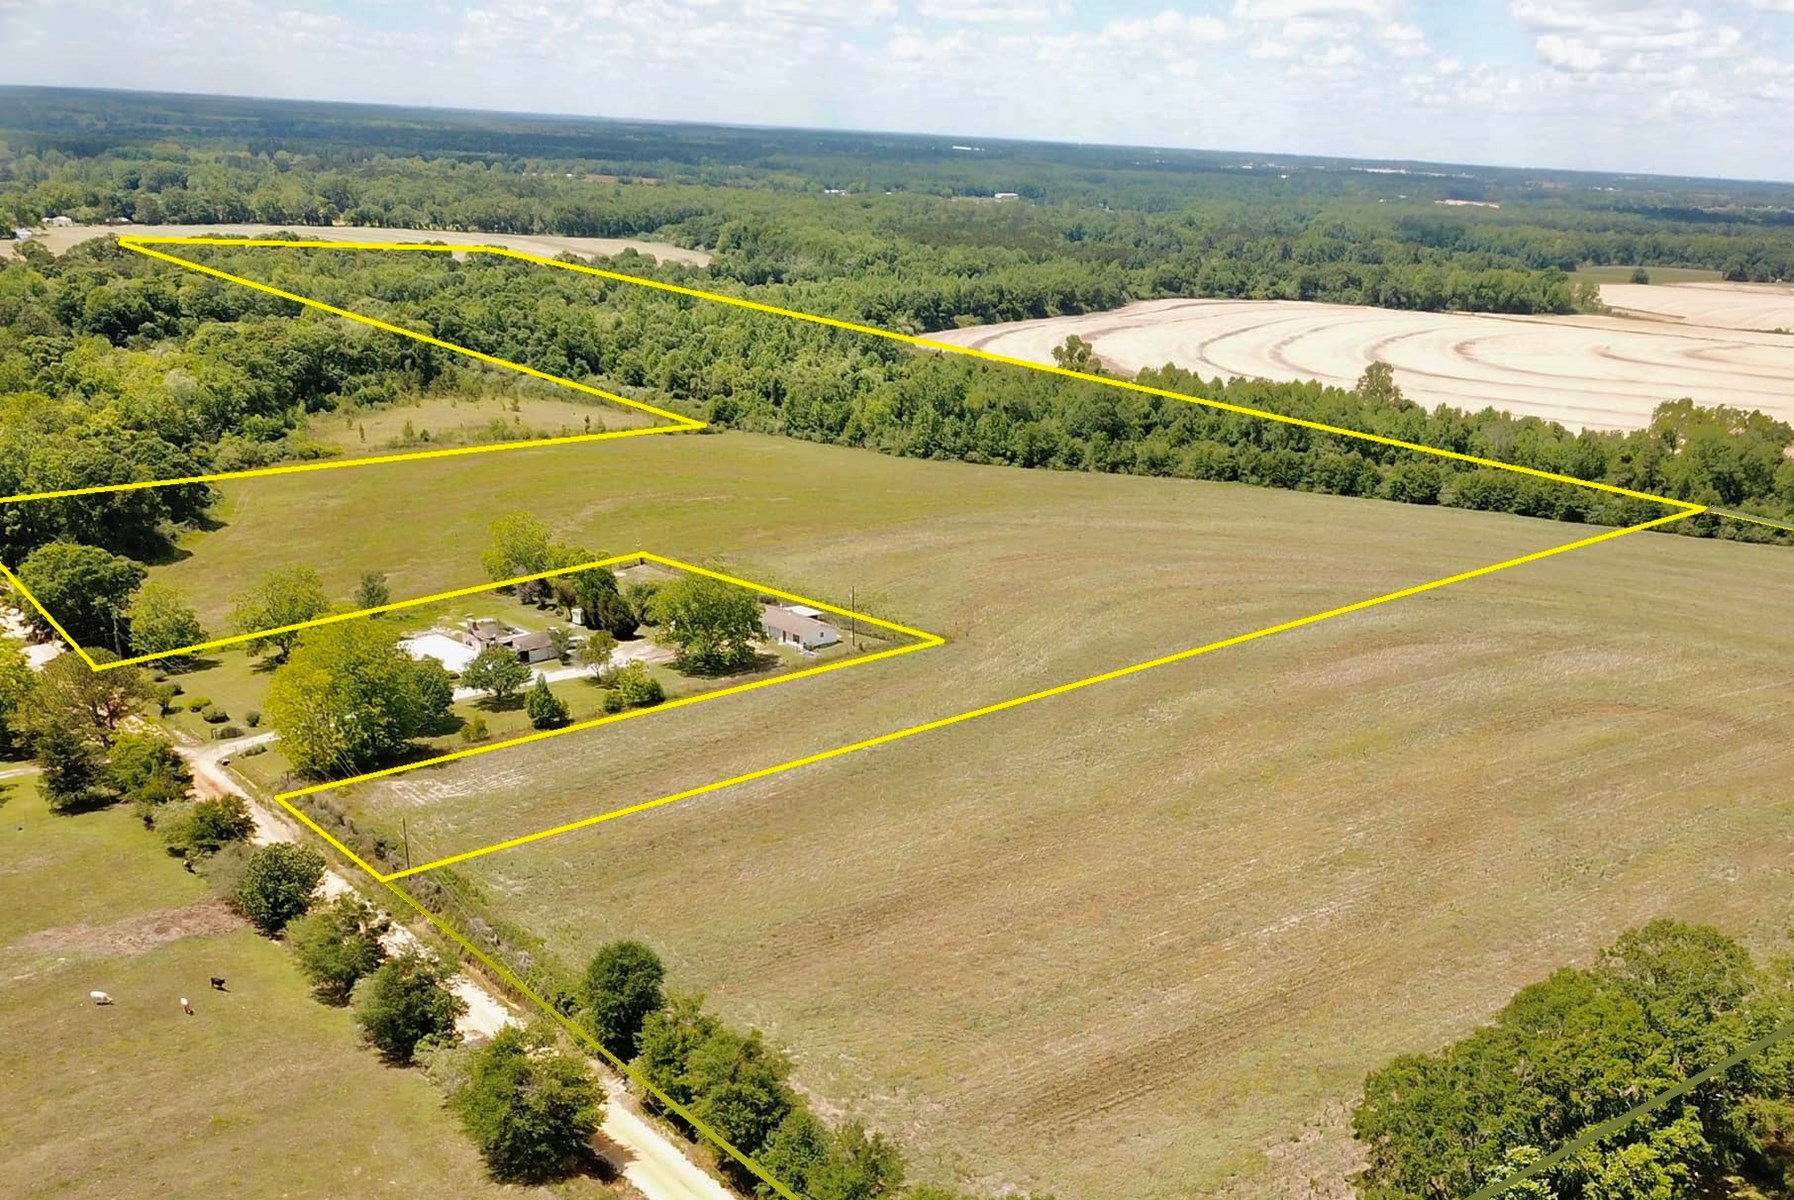 43 Acres  Land for sale Malvern, Alabama - Geneva County AL